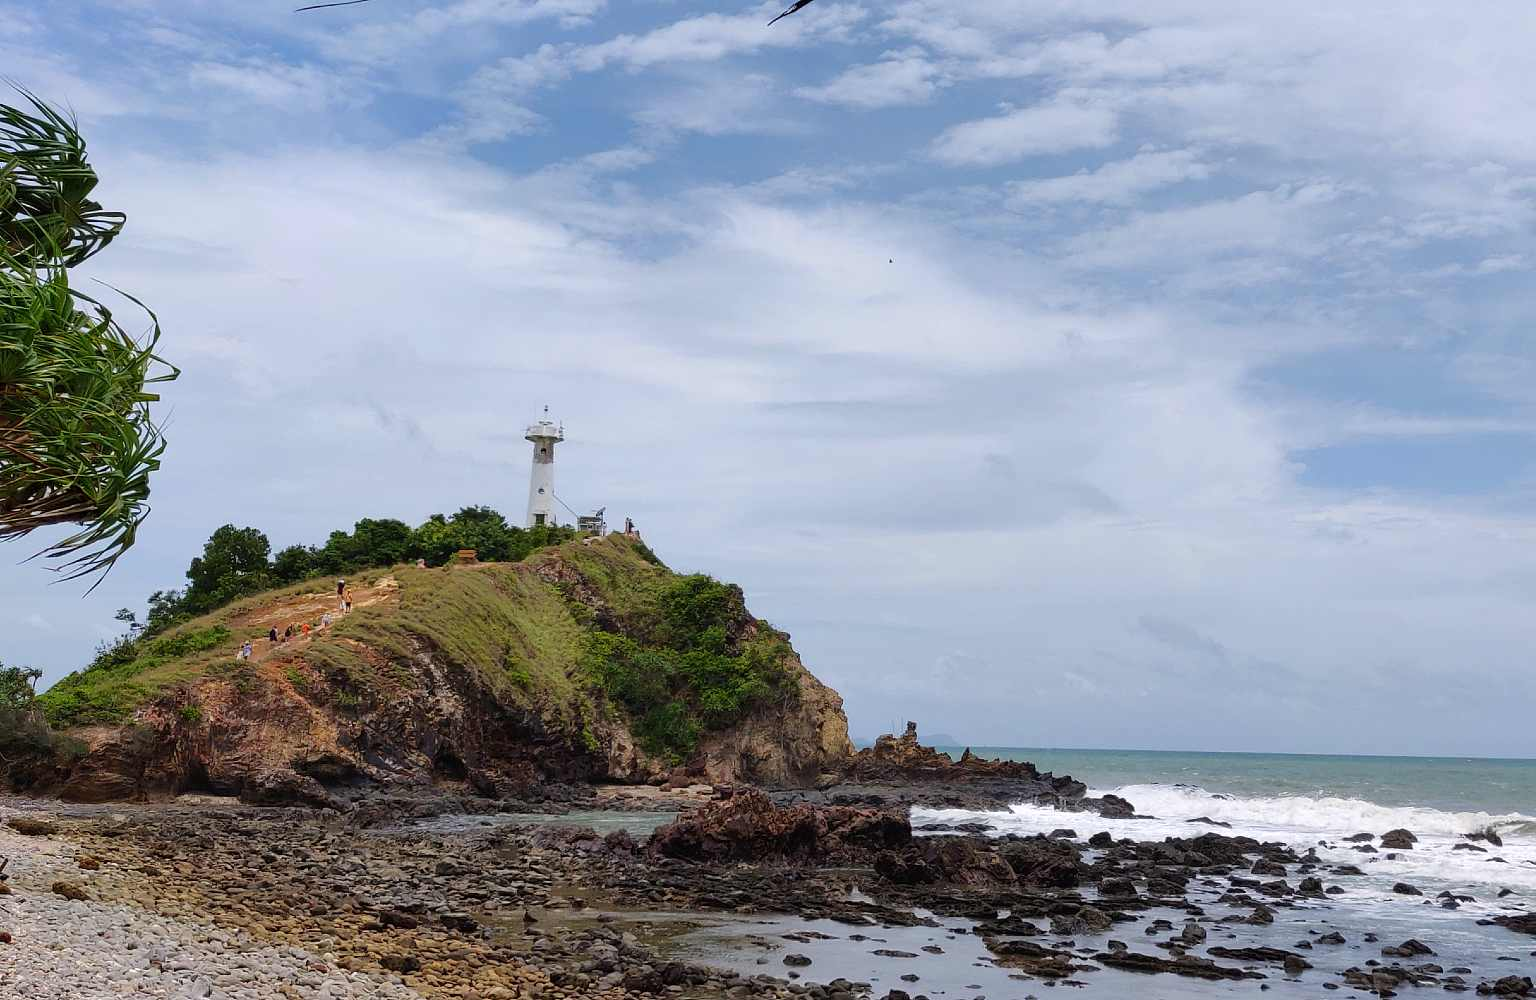 Lighthouse by the sea in Koh lanta National Park